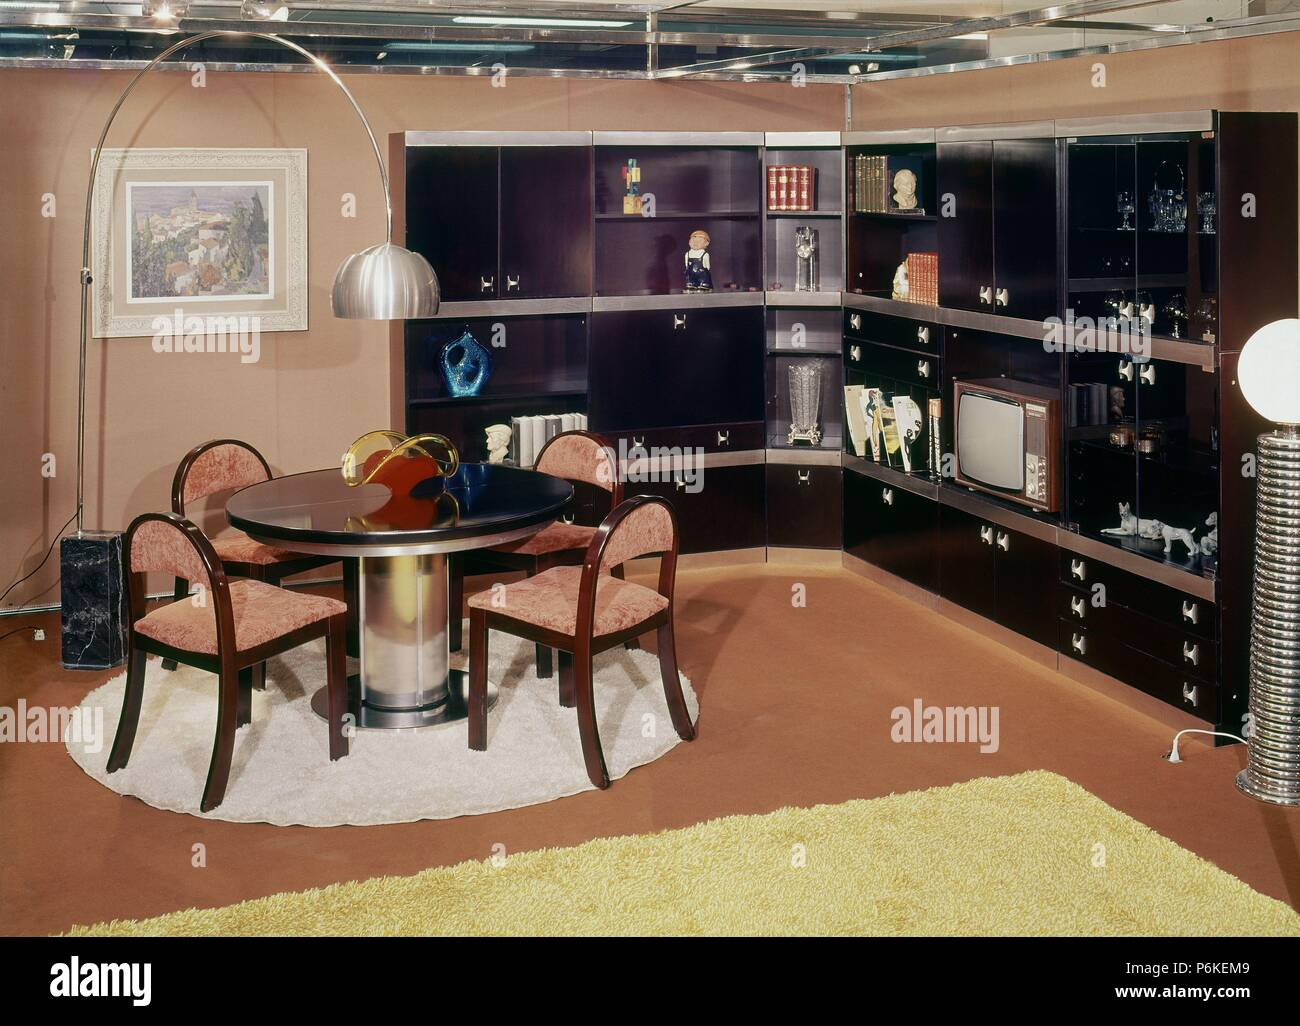 DECORACION-salon Comedor: Años 70 Stockfoto, Bild: 210640985 - Alamy